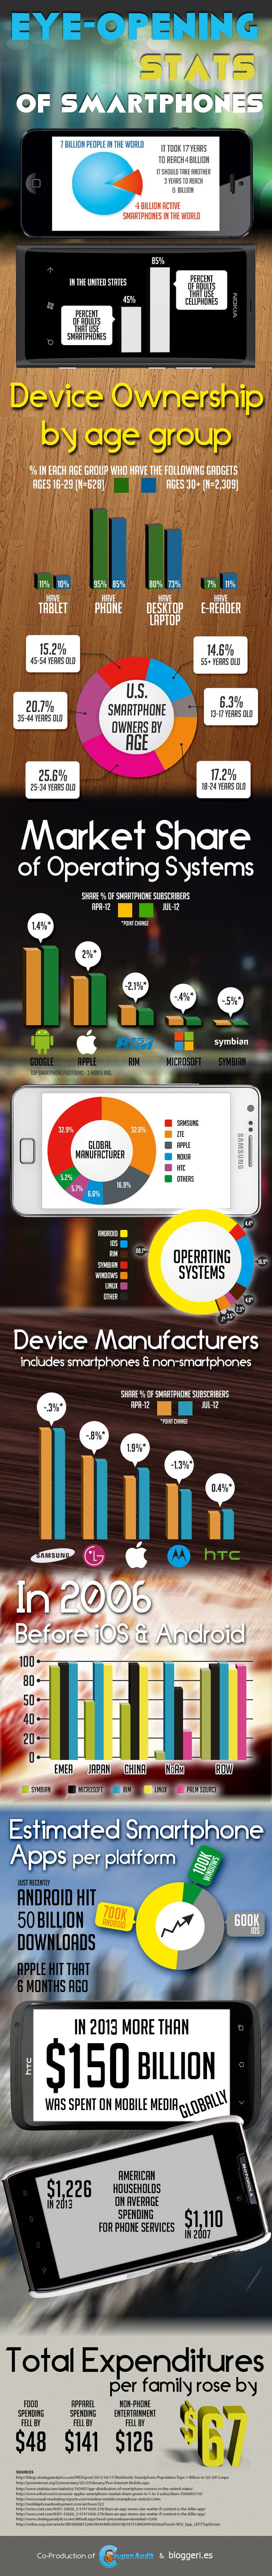 Eye-opening Stats Of Smartphones - Bloggeries